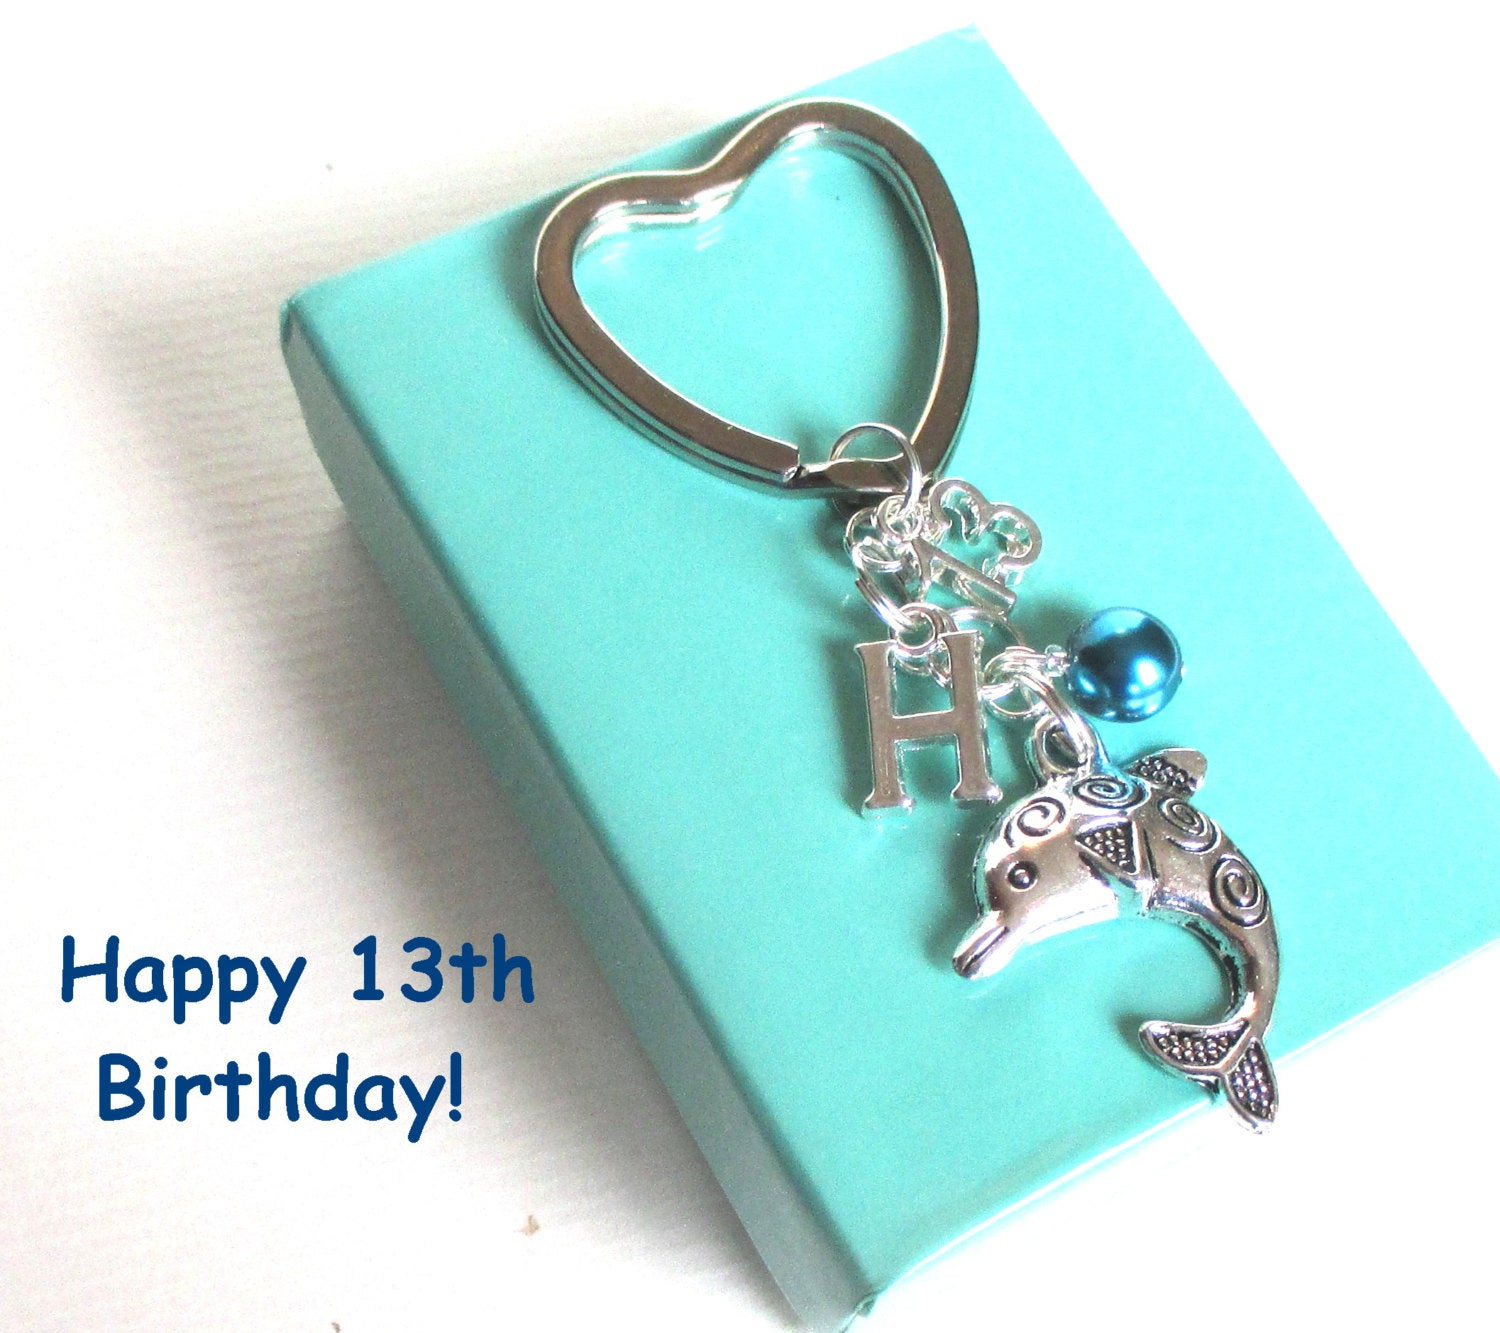 Best ideas about 13th Birthday Gifts . Save or Pin 13th birthday t Dolphin keychain Personalised 13th Now.